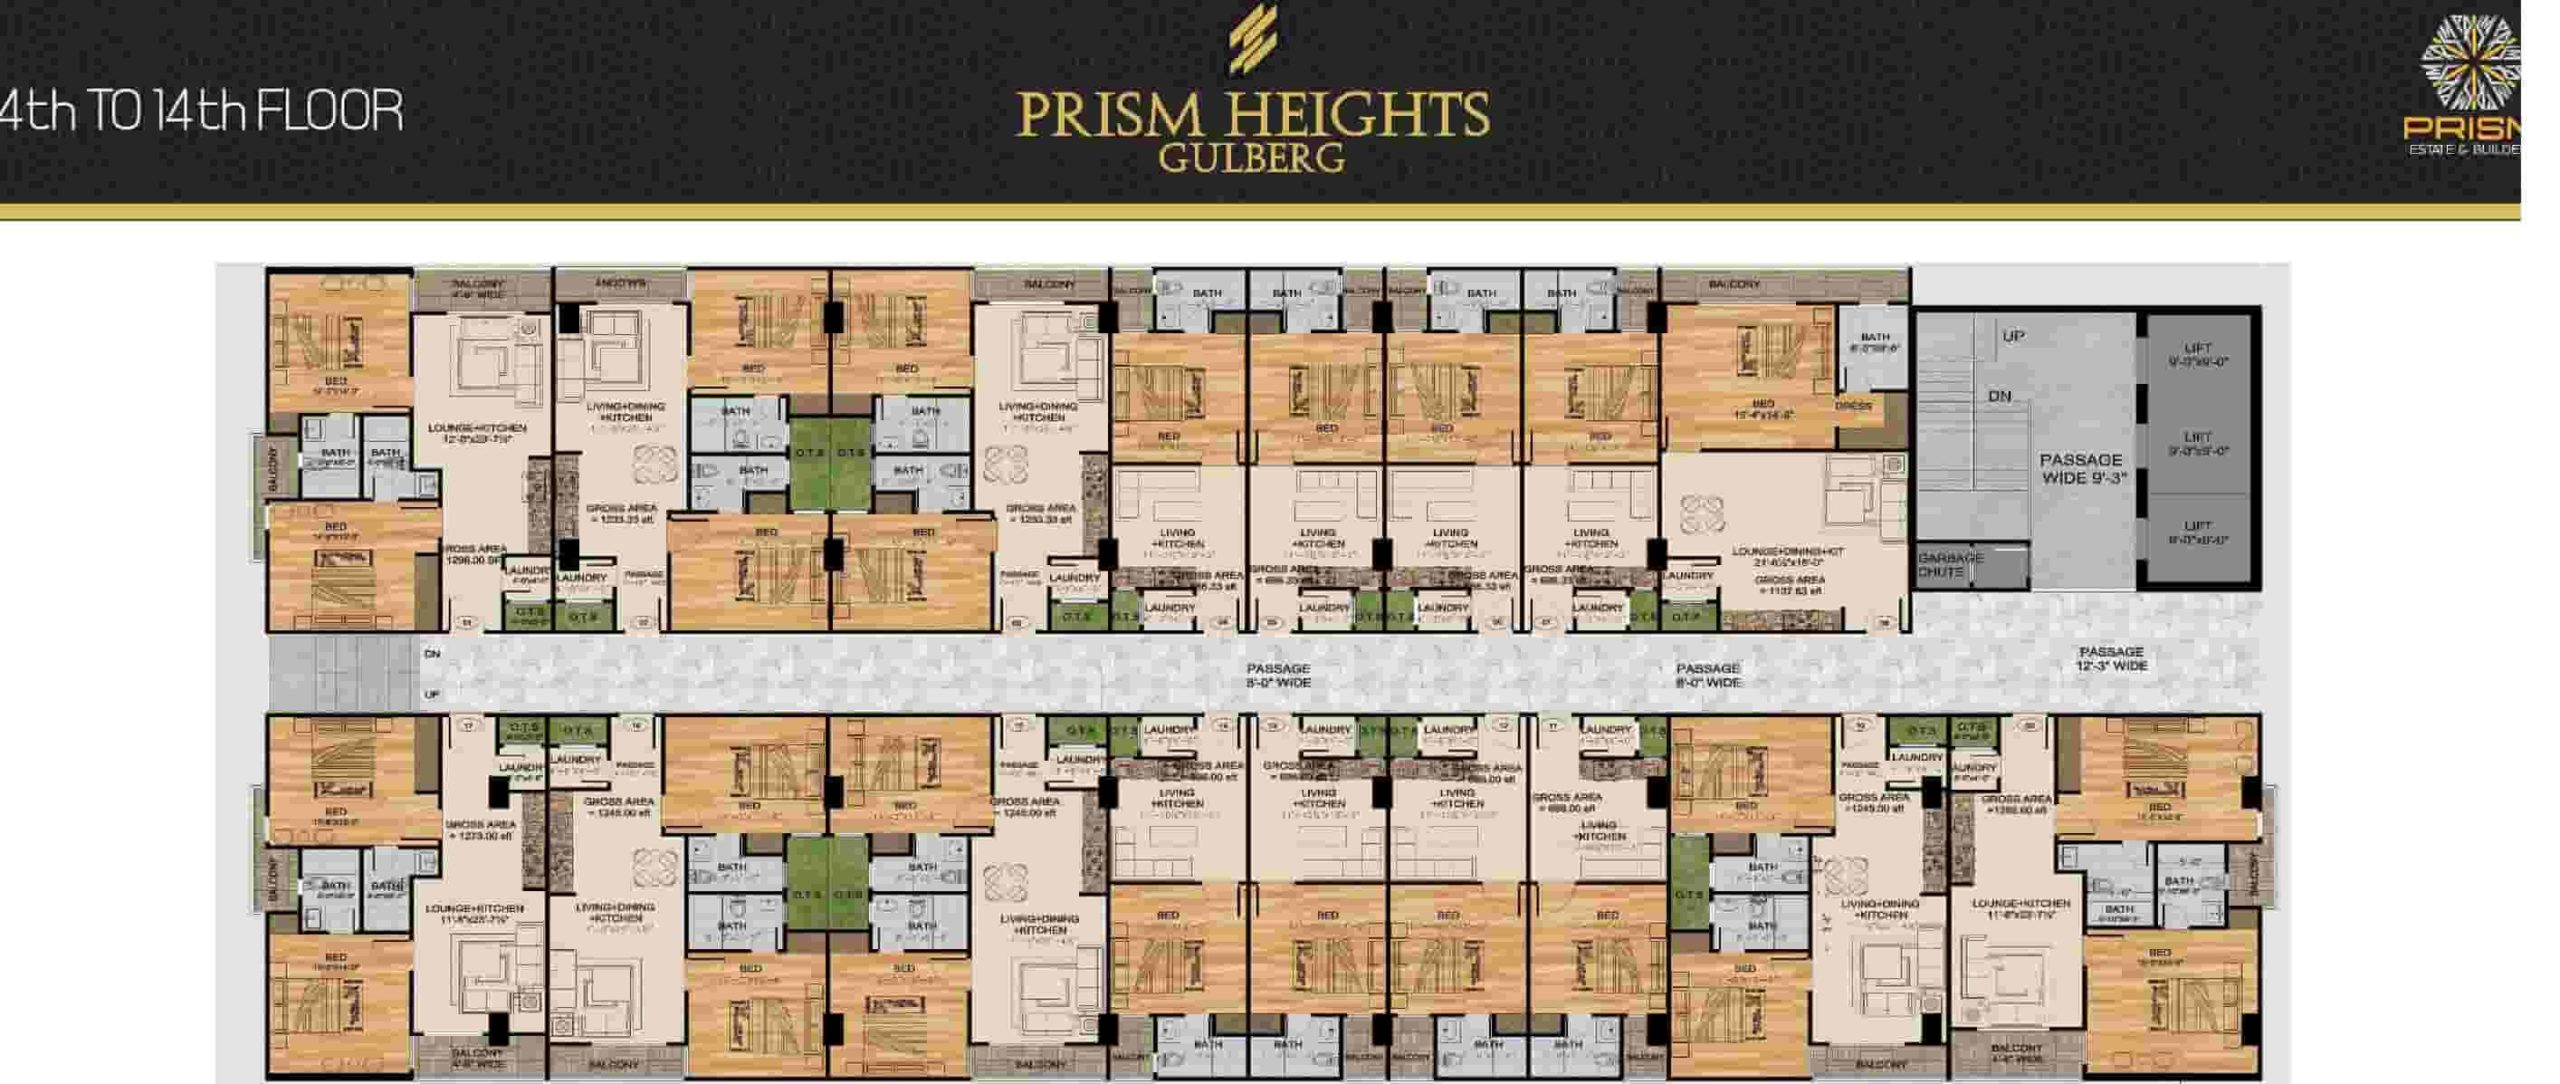 Prism Heights 4th to 14th Floor Plan